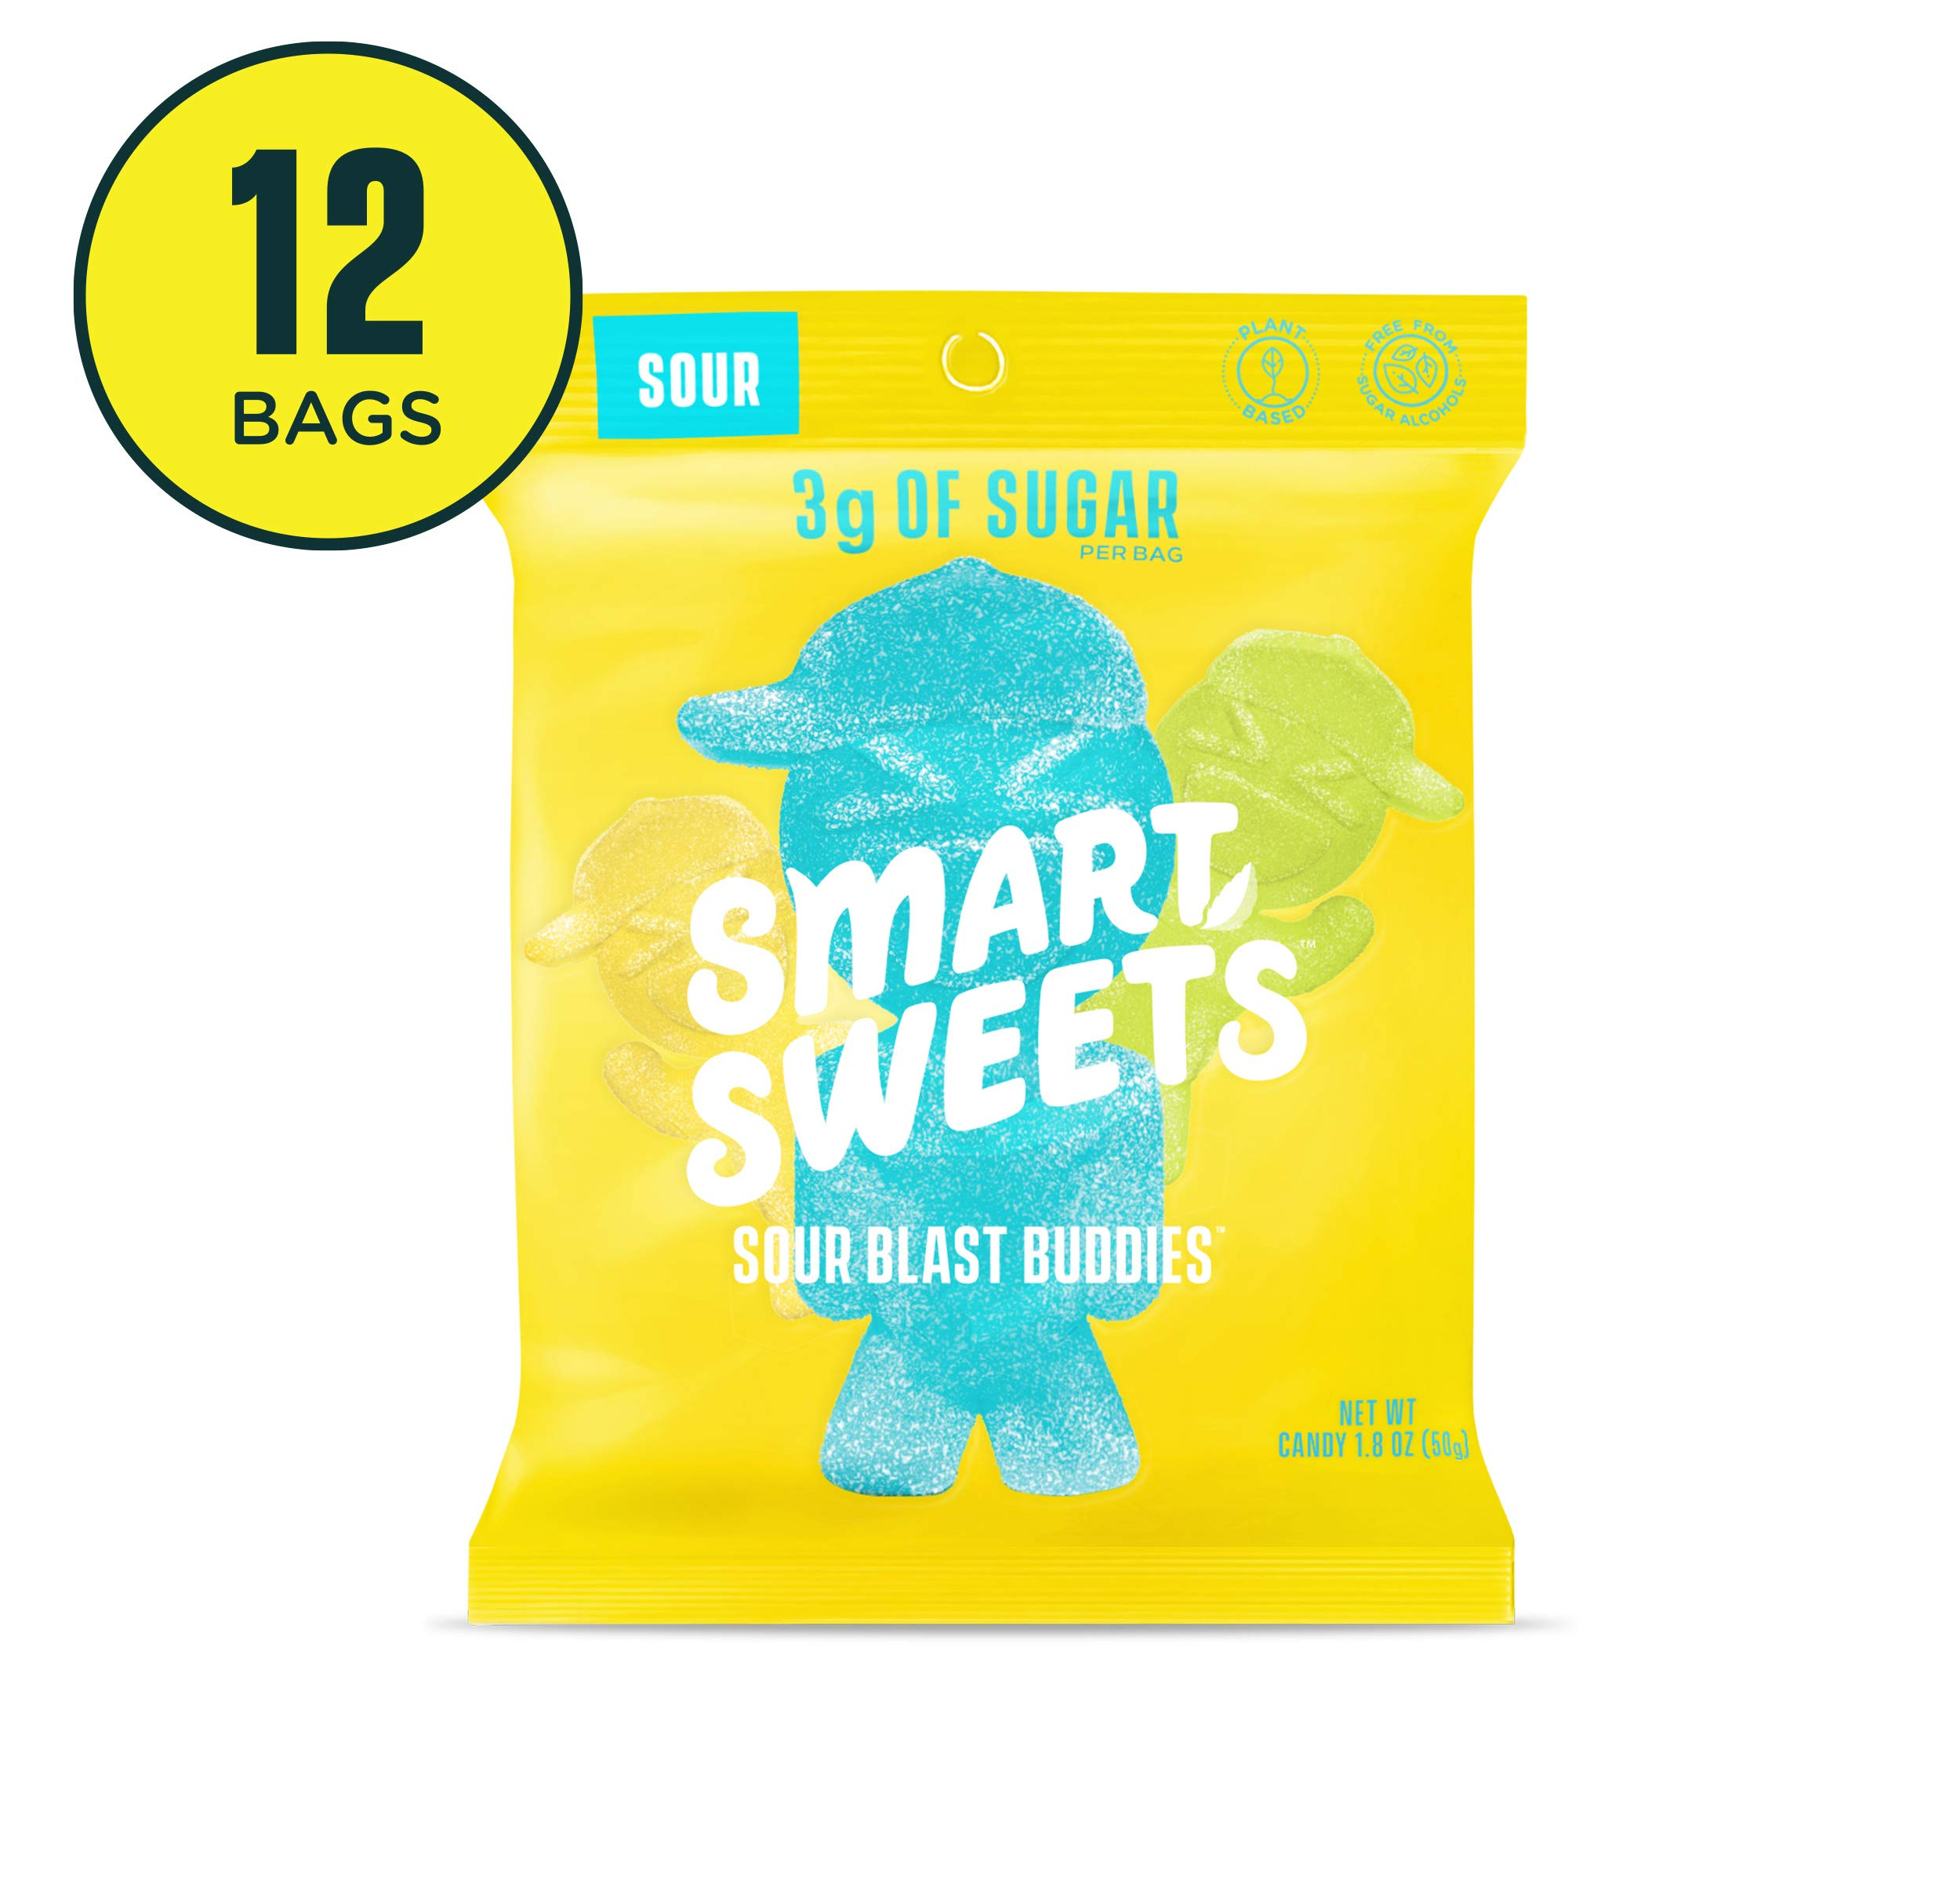 SmartSweets Sour Blast Buddies 1.8 Oz Bags (Box Of 12), Candy With Low-Sugar (3g) & Low Calorie (80)- Free of Sugar Alcohols & No Artificial Sweeteners, Sweetened With Stevia by SmartSweets